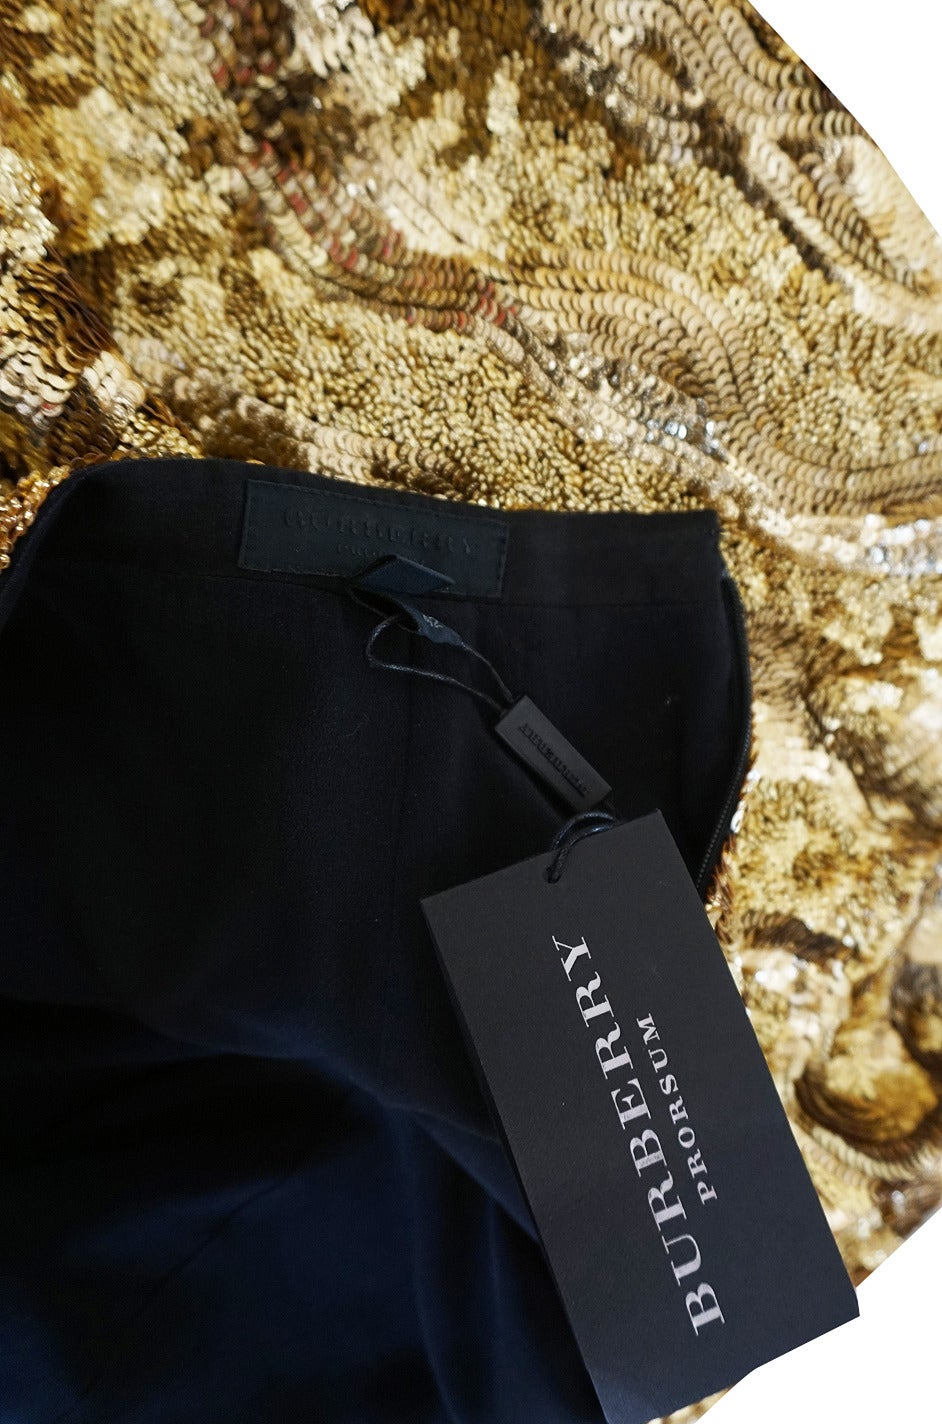 Resort 2014 Burberry Prorsum Hammered Gold Sequin Skirt In Excellent Condition For Sale In Toronto, CA